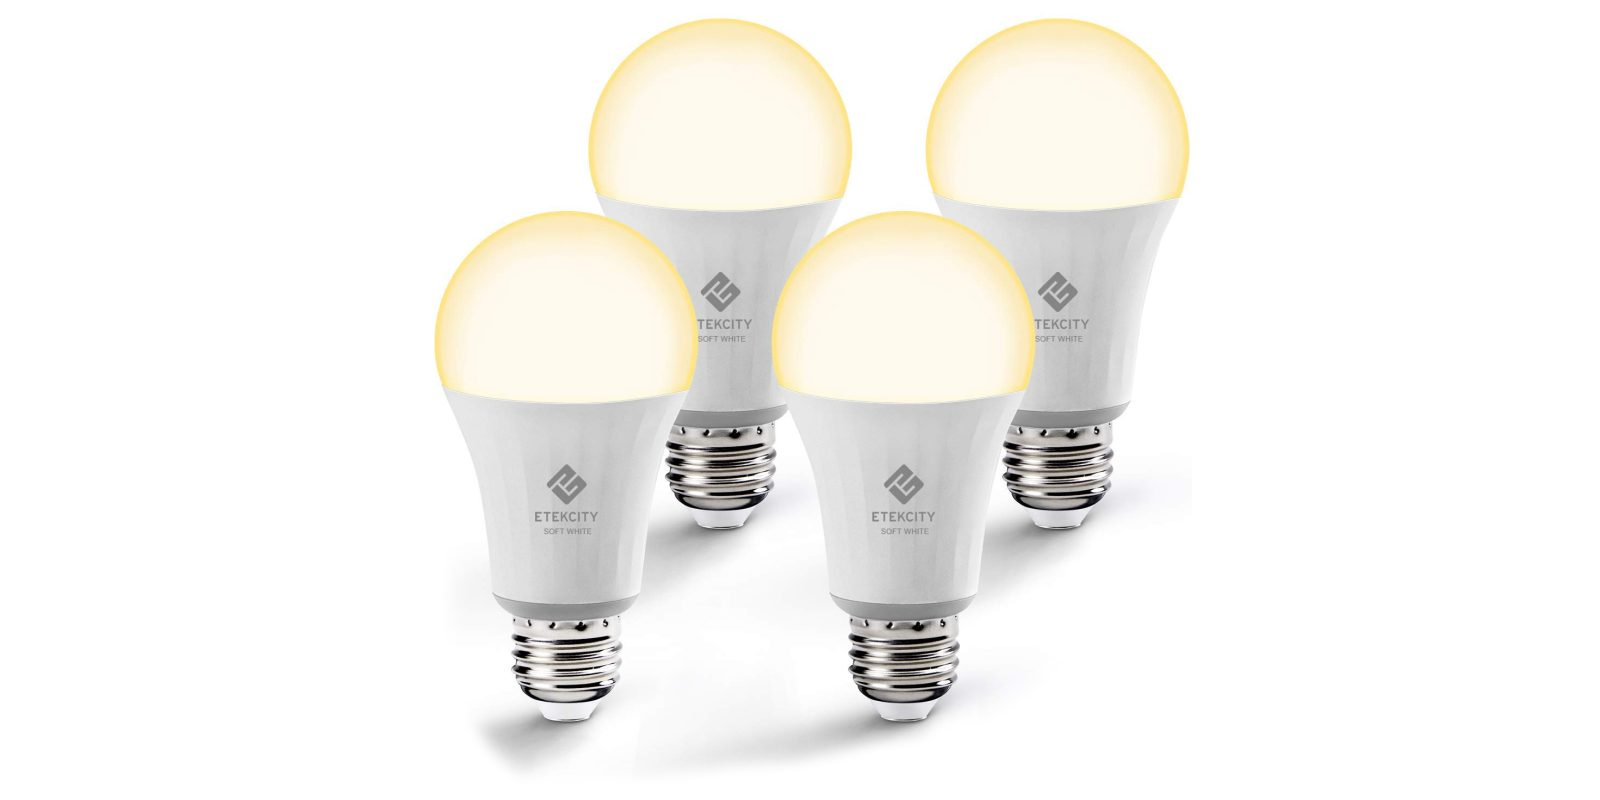 Pick up four smart LED A19 light bulbs for $38 (Reg. $50), more in today's Green Deals